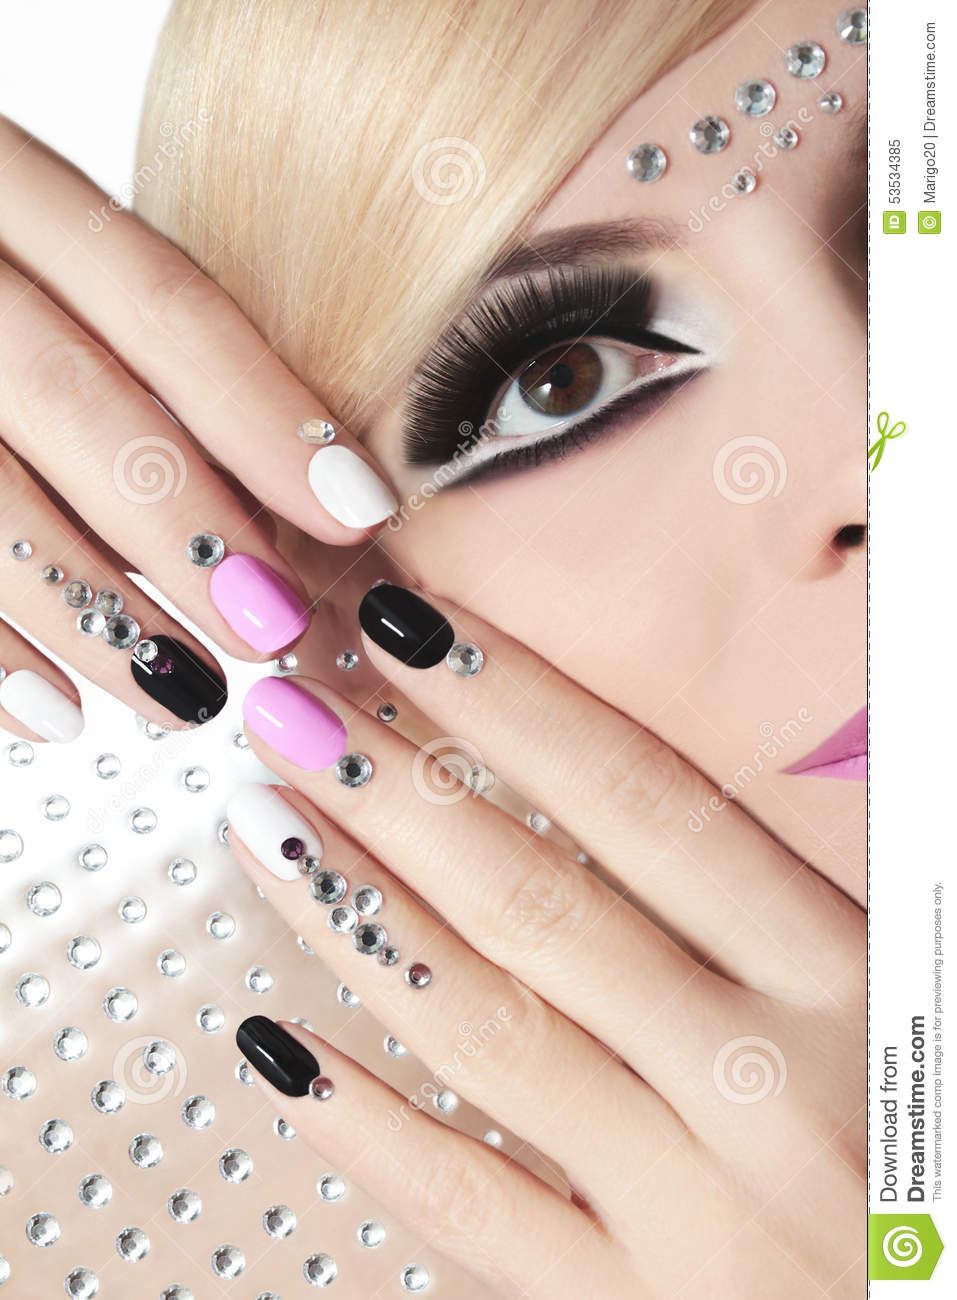 Fashion Nail Trend: Fashion Nails And Makeup With Rhinestones. Stock Image